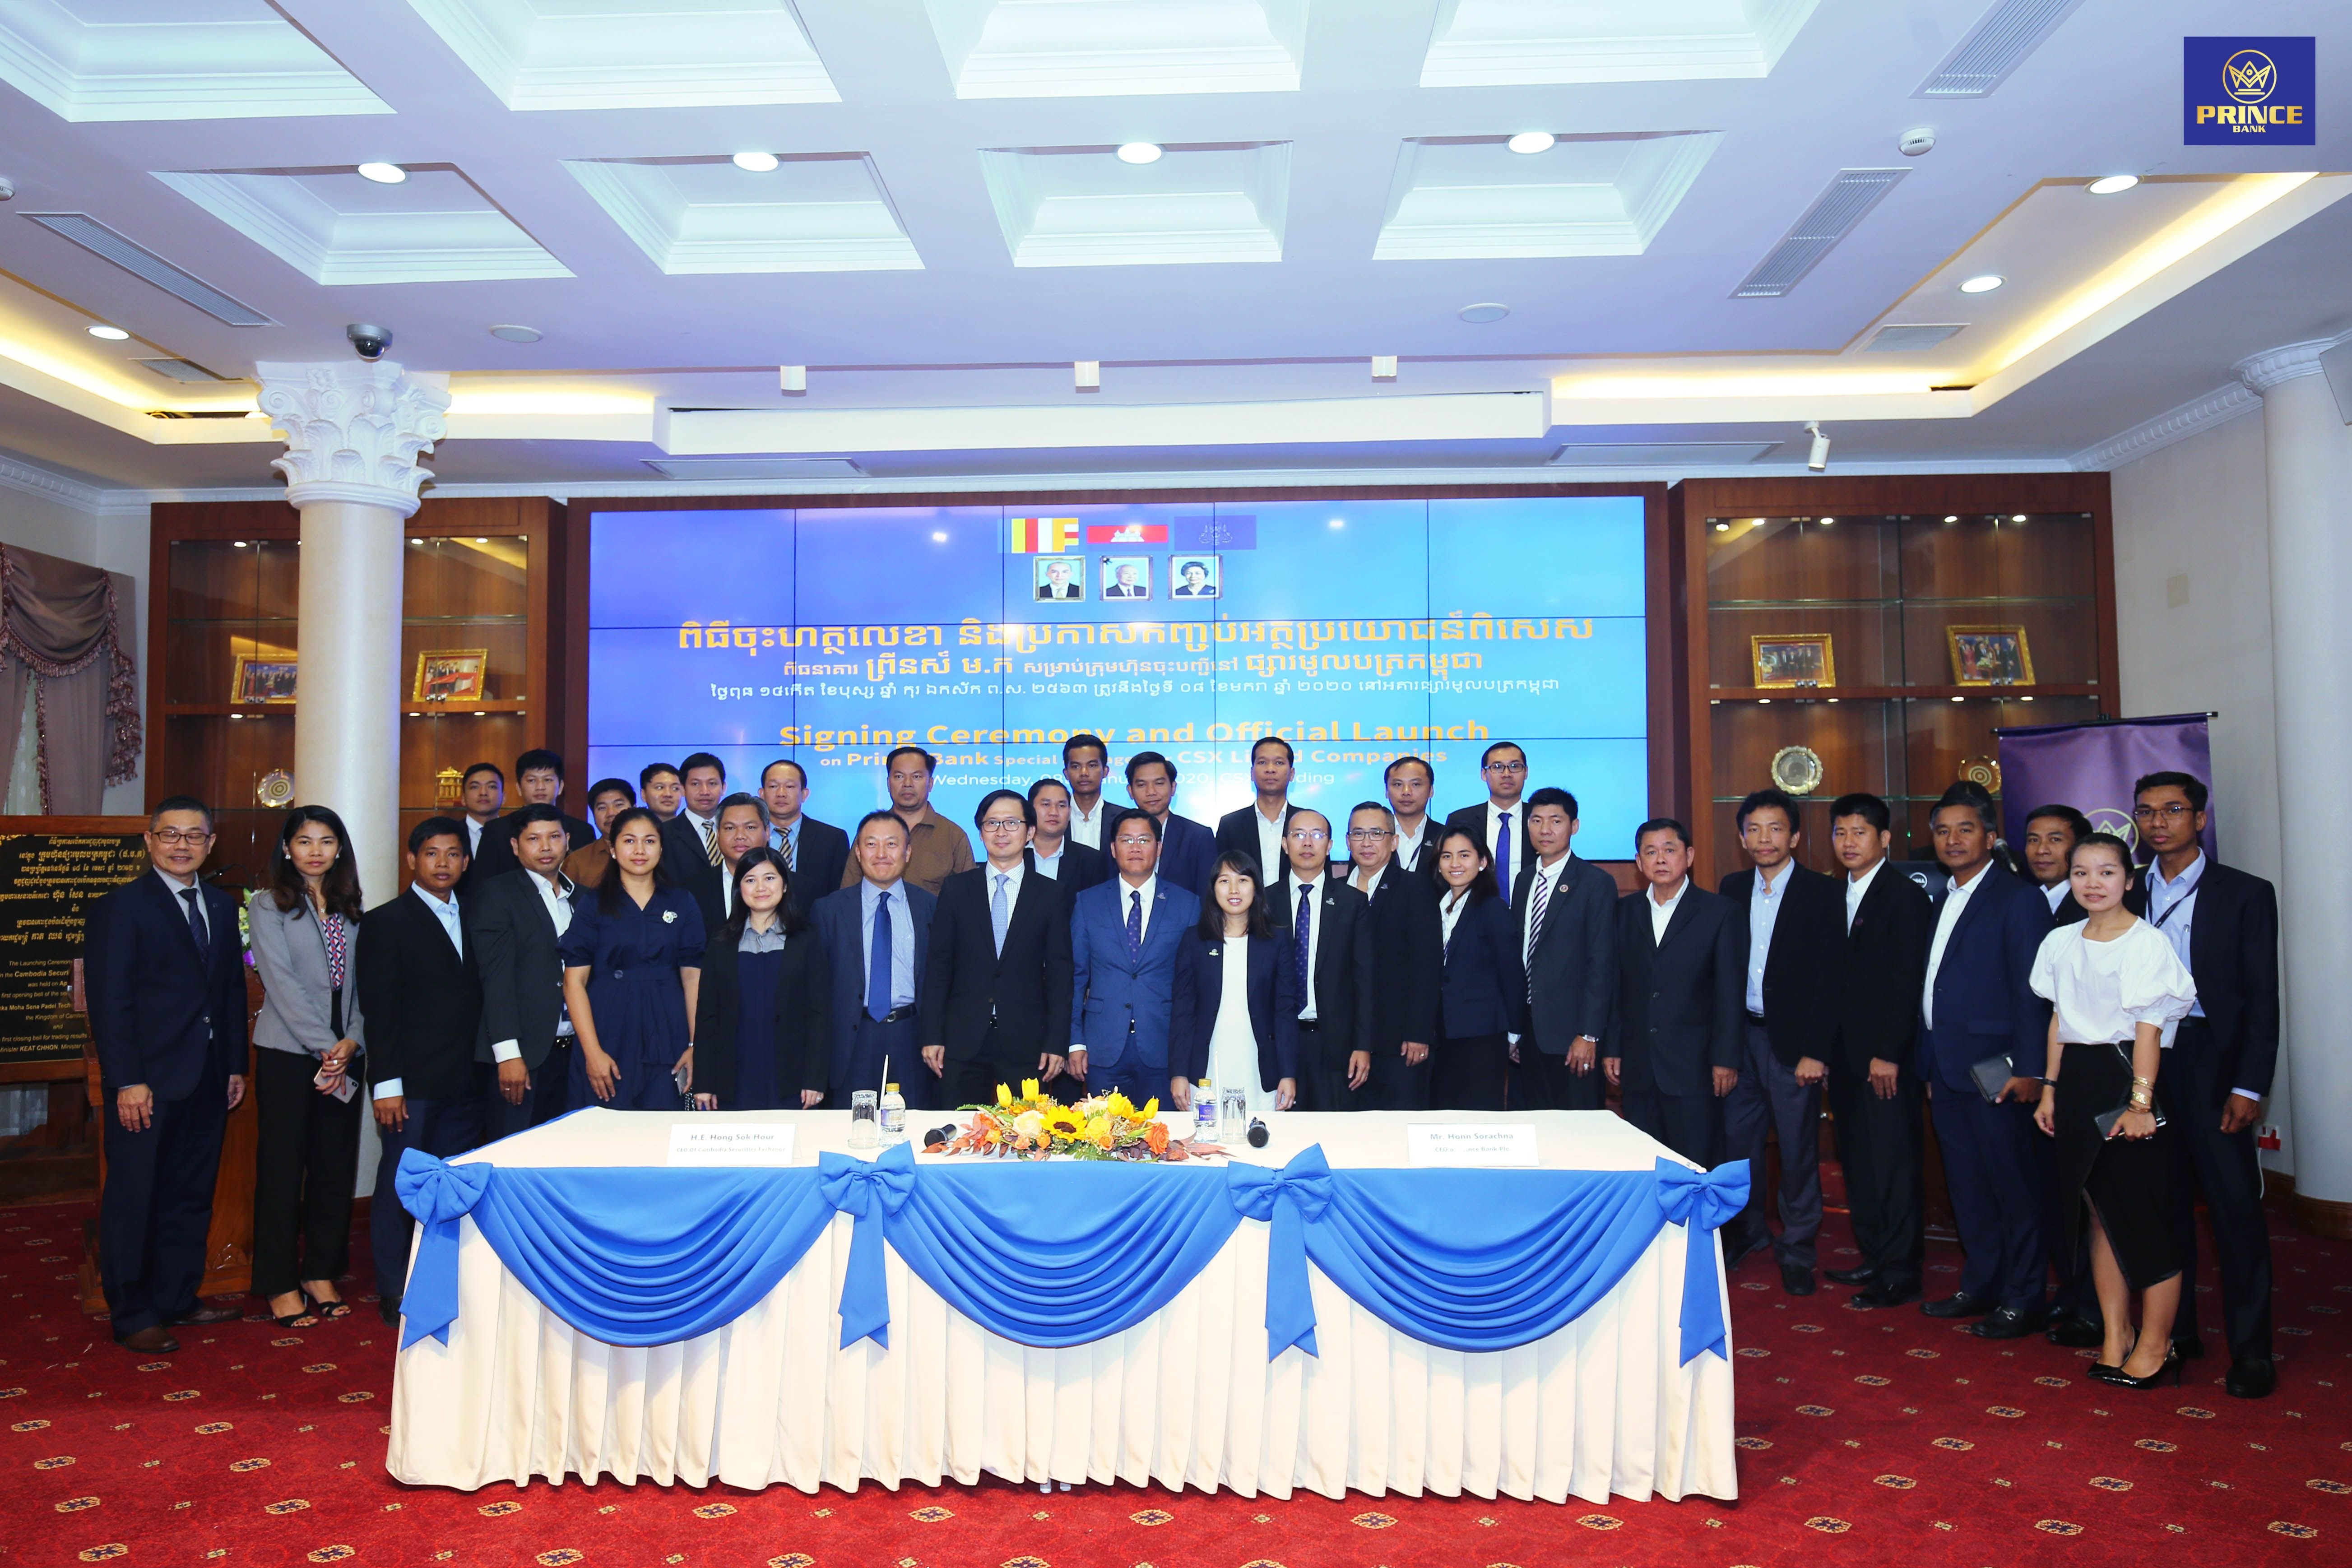 Prince Bank and the CSX signed a Memorandum of Understanding (MOU) to offer a special package for CSX listed companies